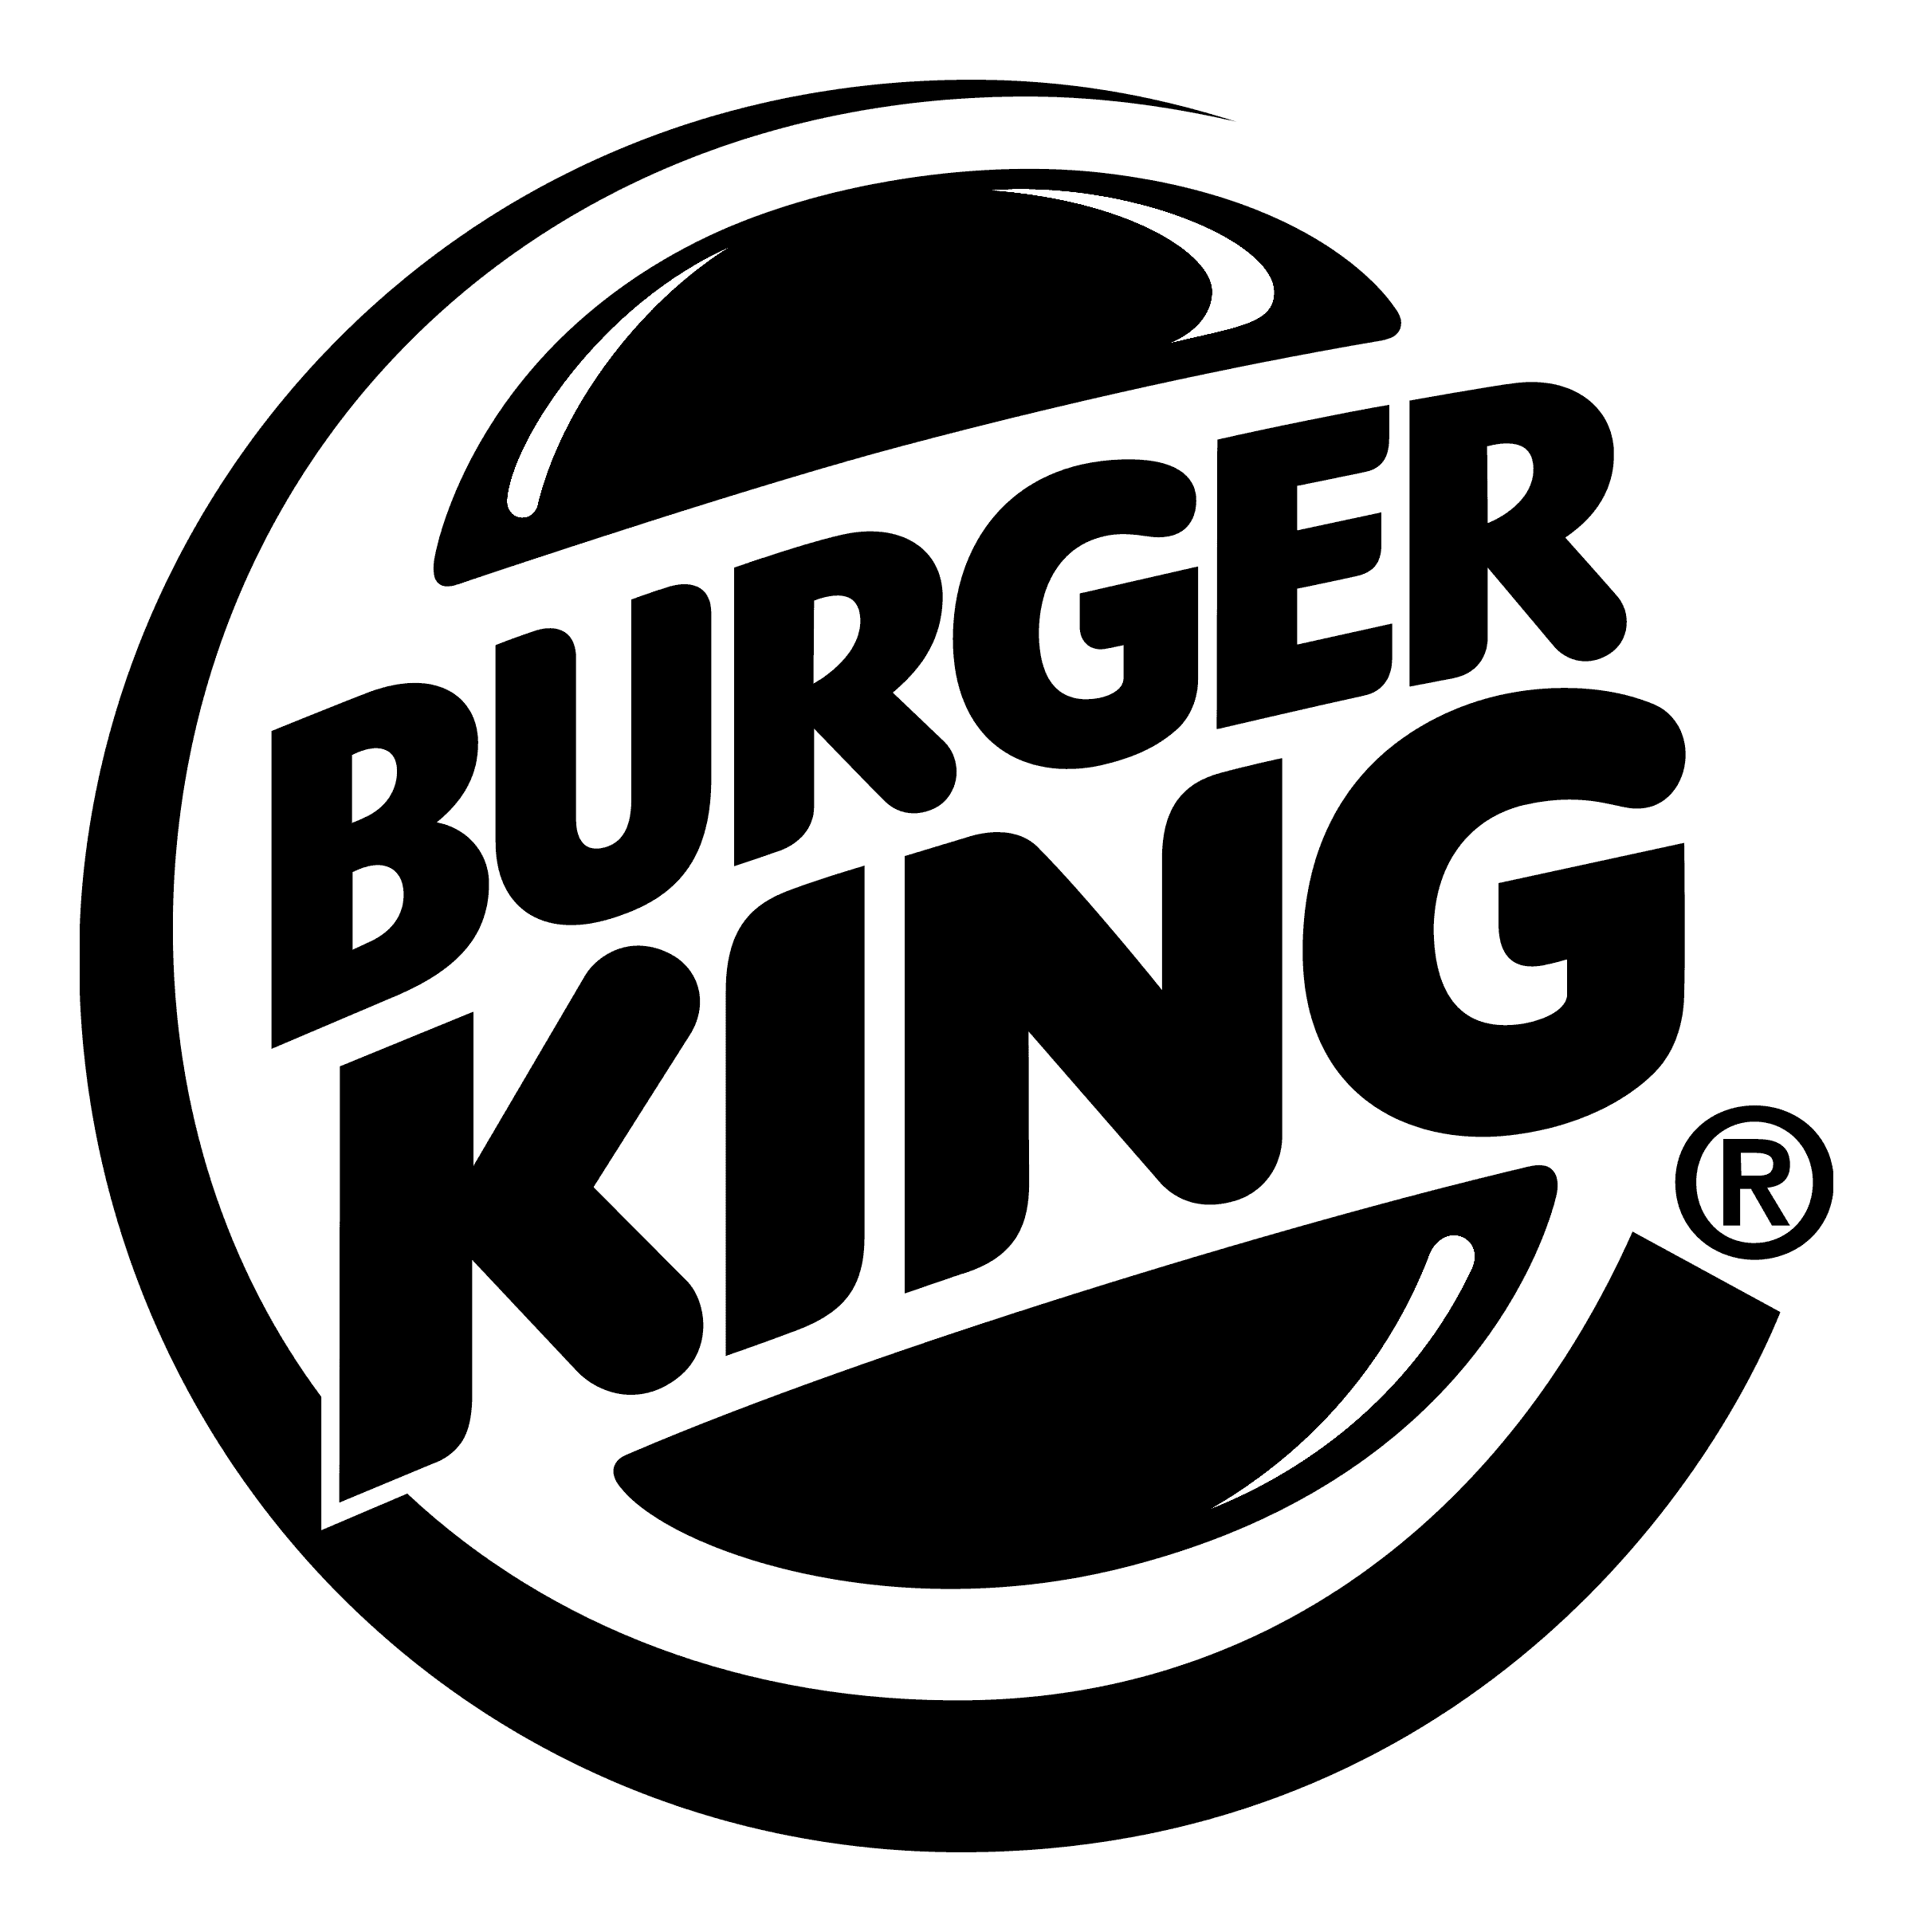 Burger King logo black and white